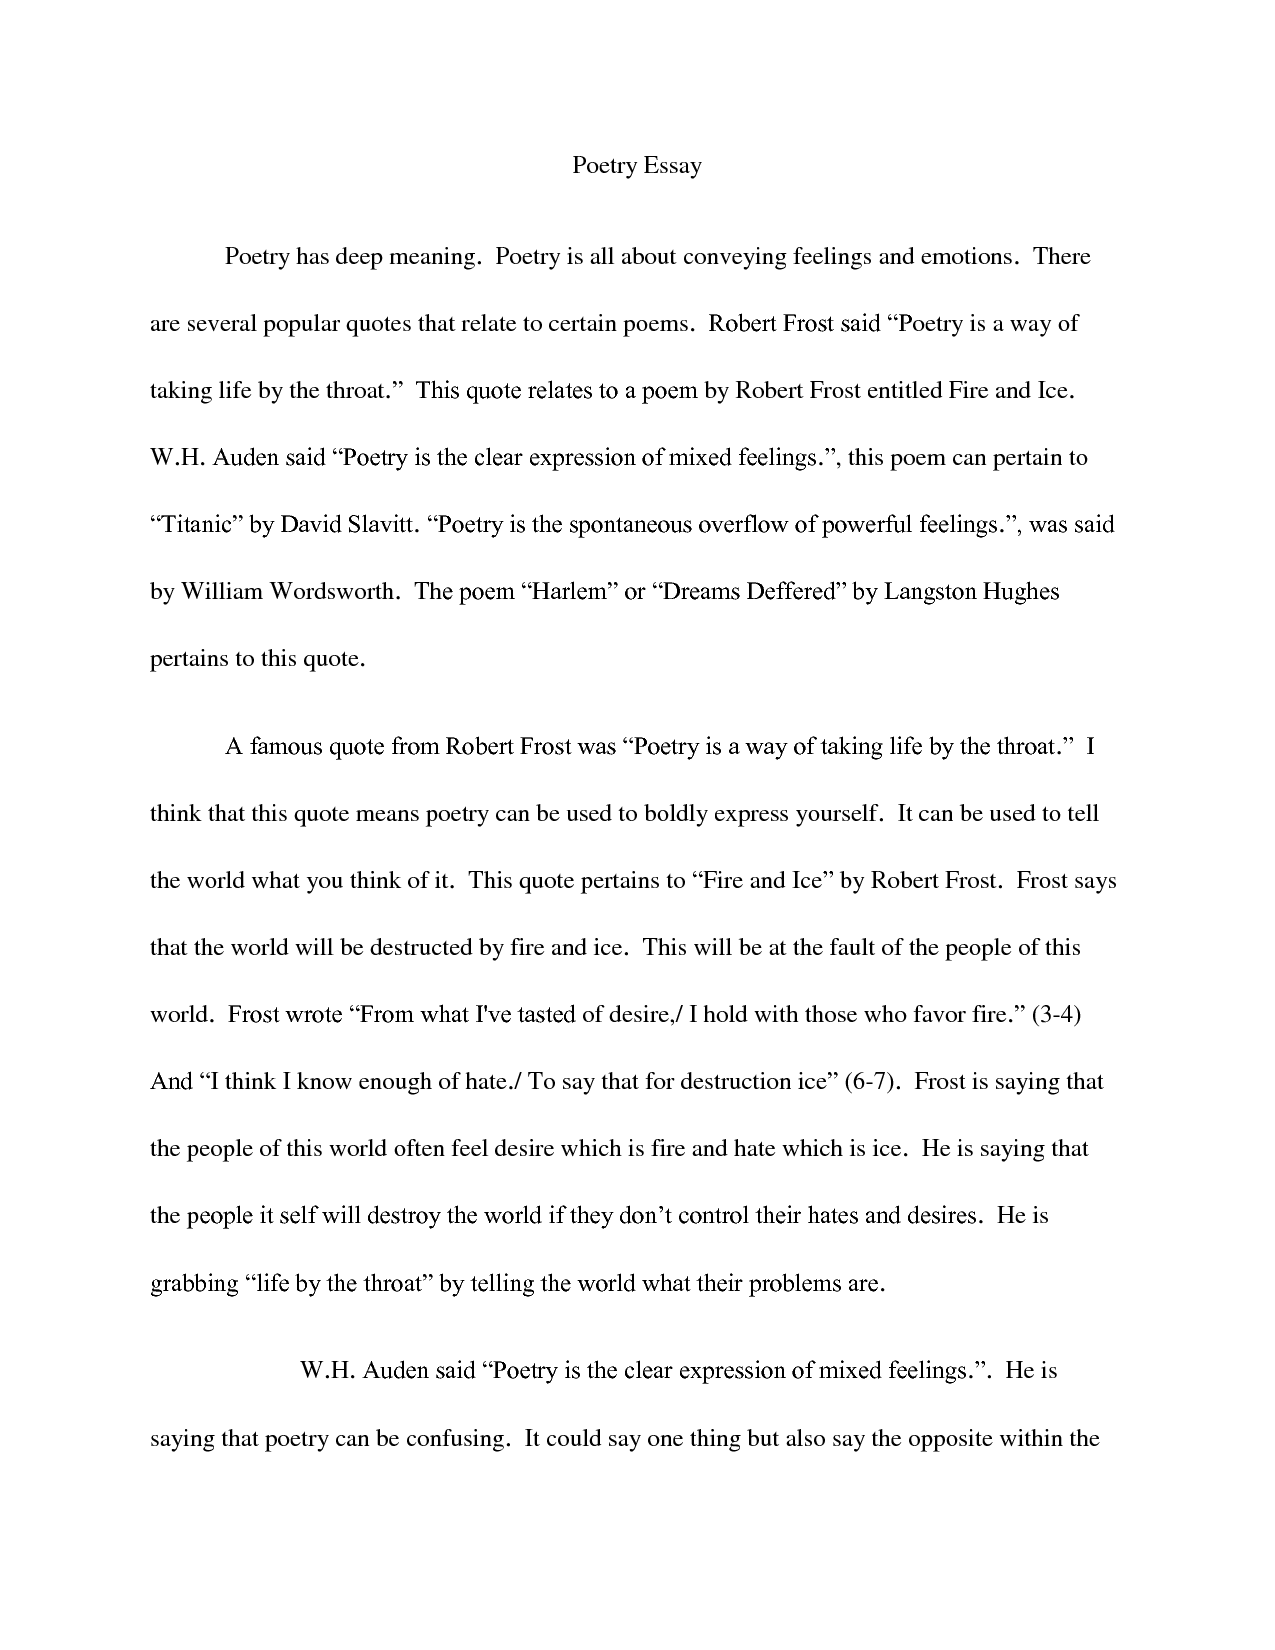 001 Essay Example How To Write An With Quotes Imposing In Mla Integrate Quotations Writing Essays-apa Or Include A Direct Quote Apa Full